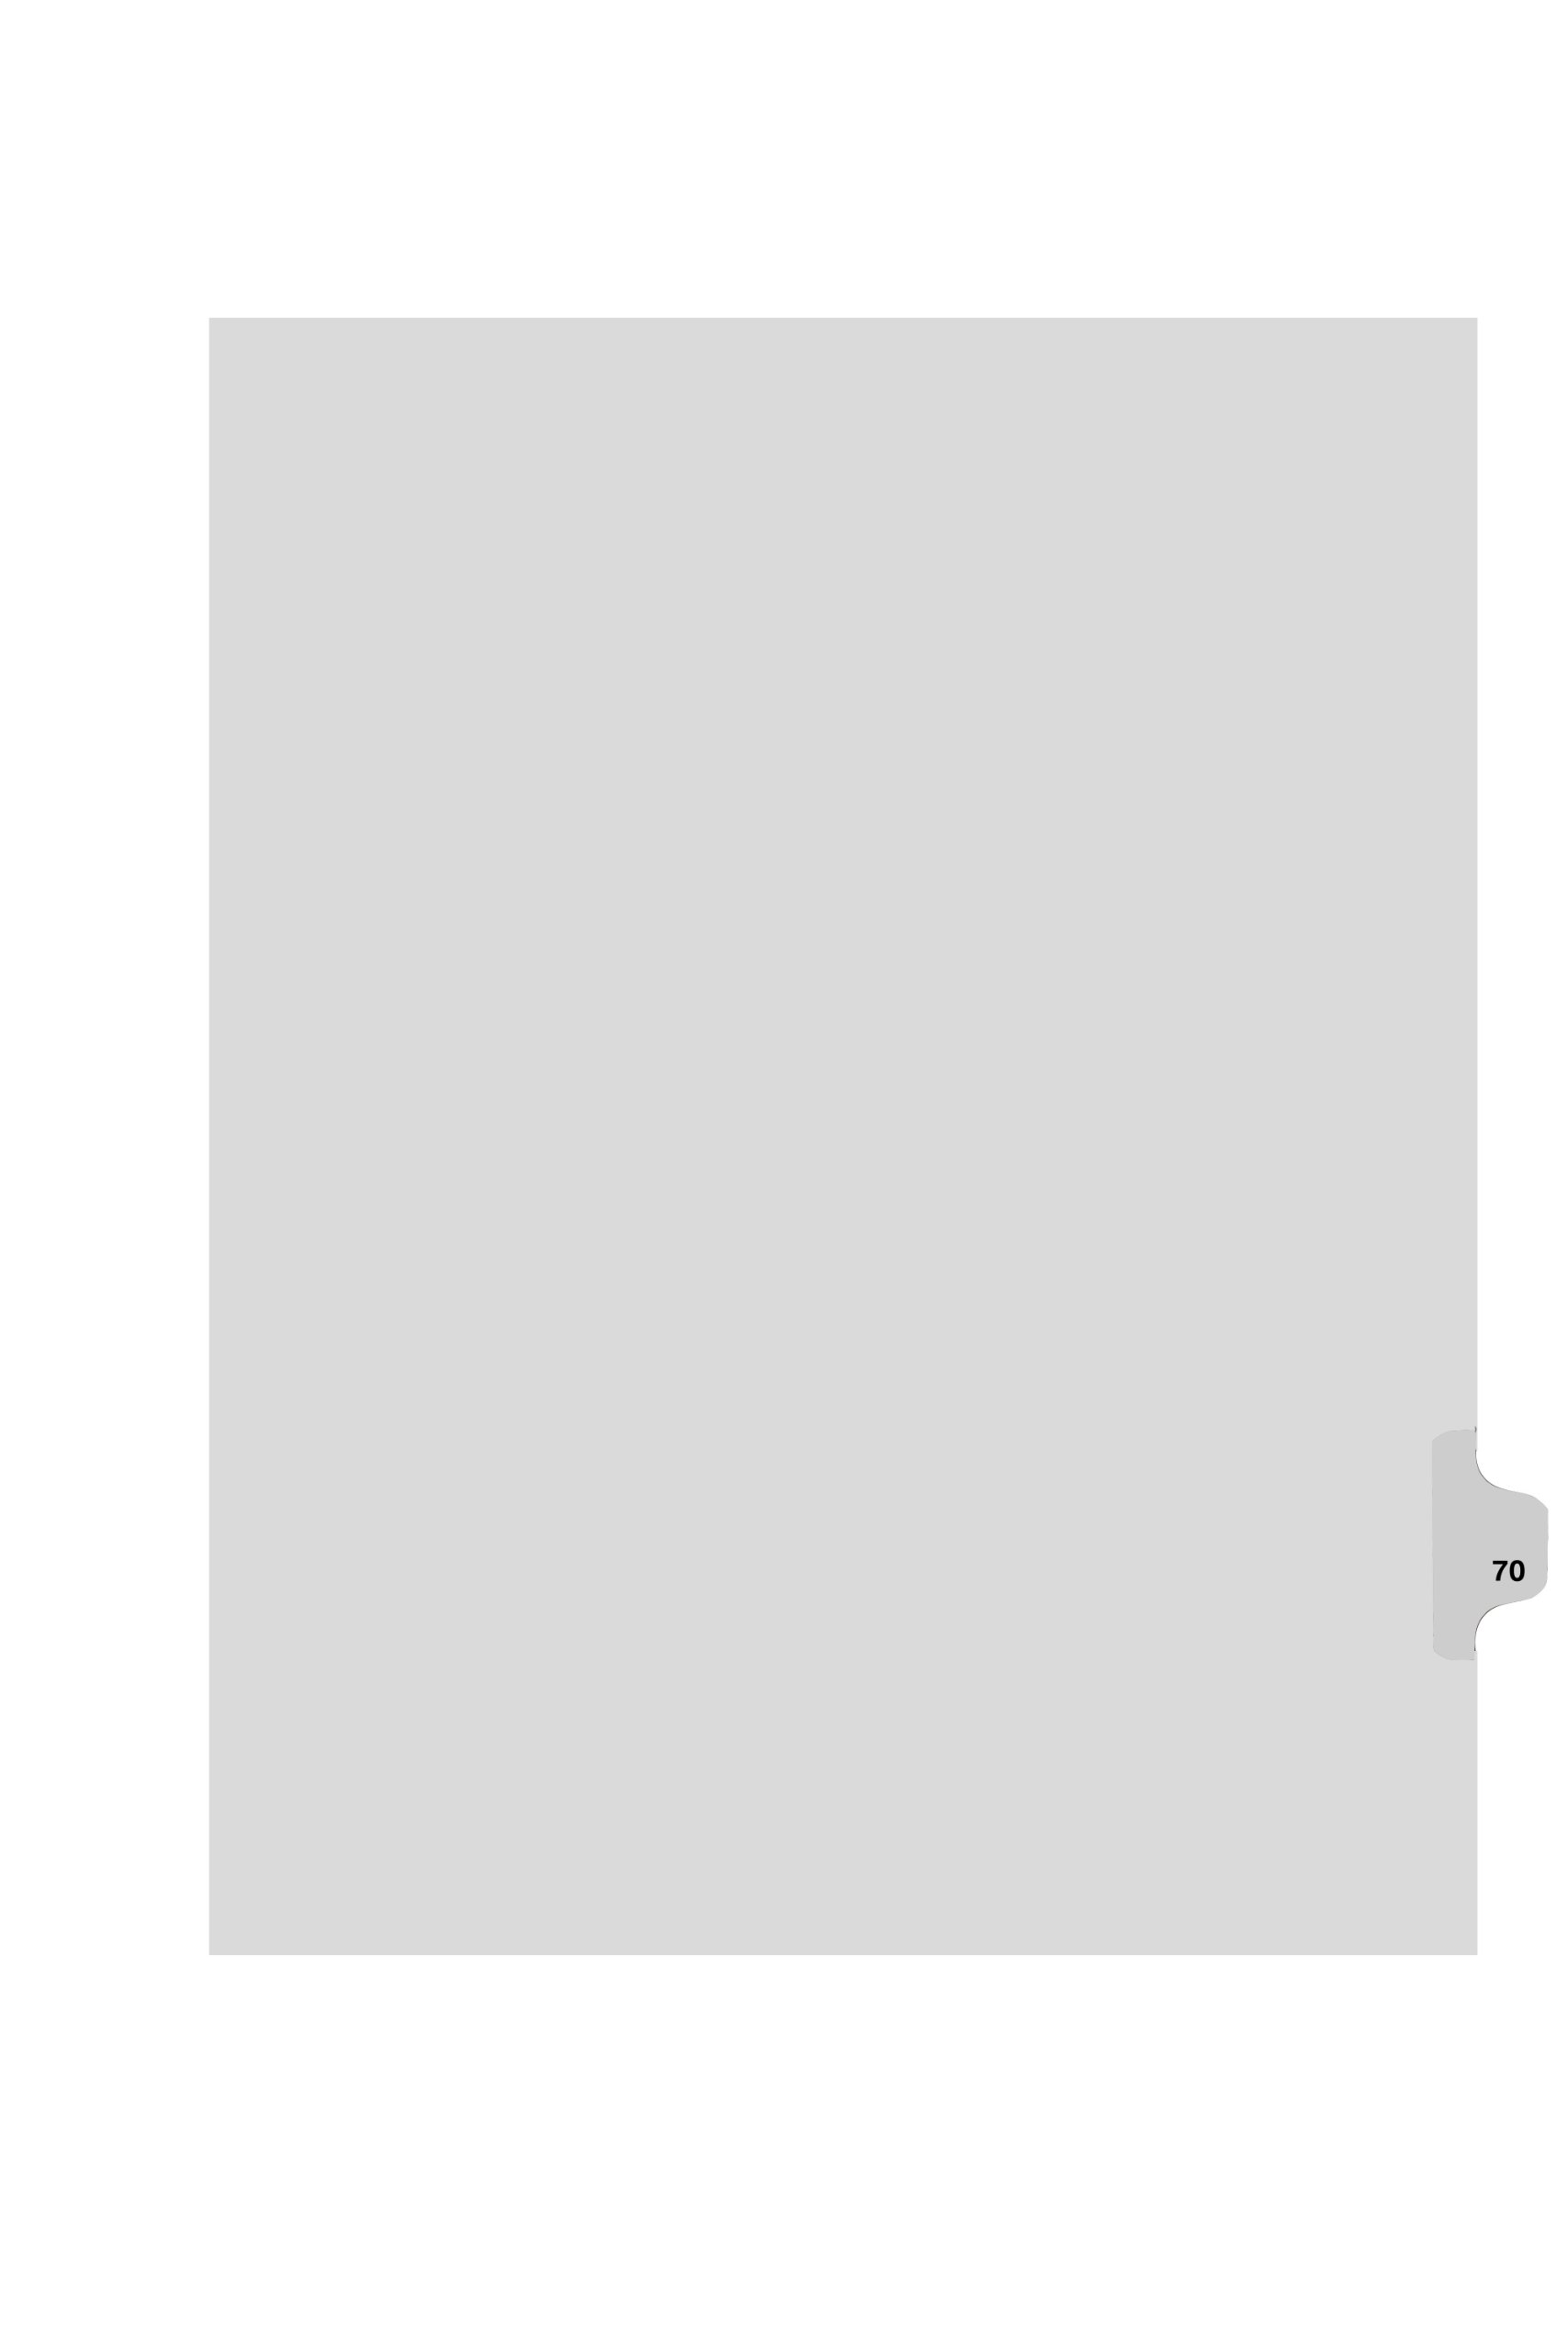 Kleer-Fax Legal-Size Individual Number Index Dividers, Side Tab, 1/25th Cut, 25 Sheets/Pack, White, Number 70 (84470)